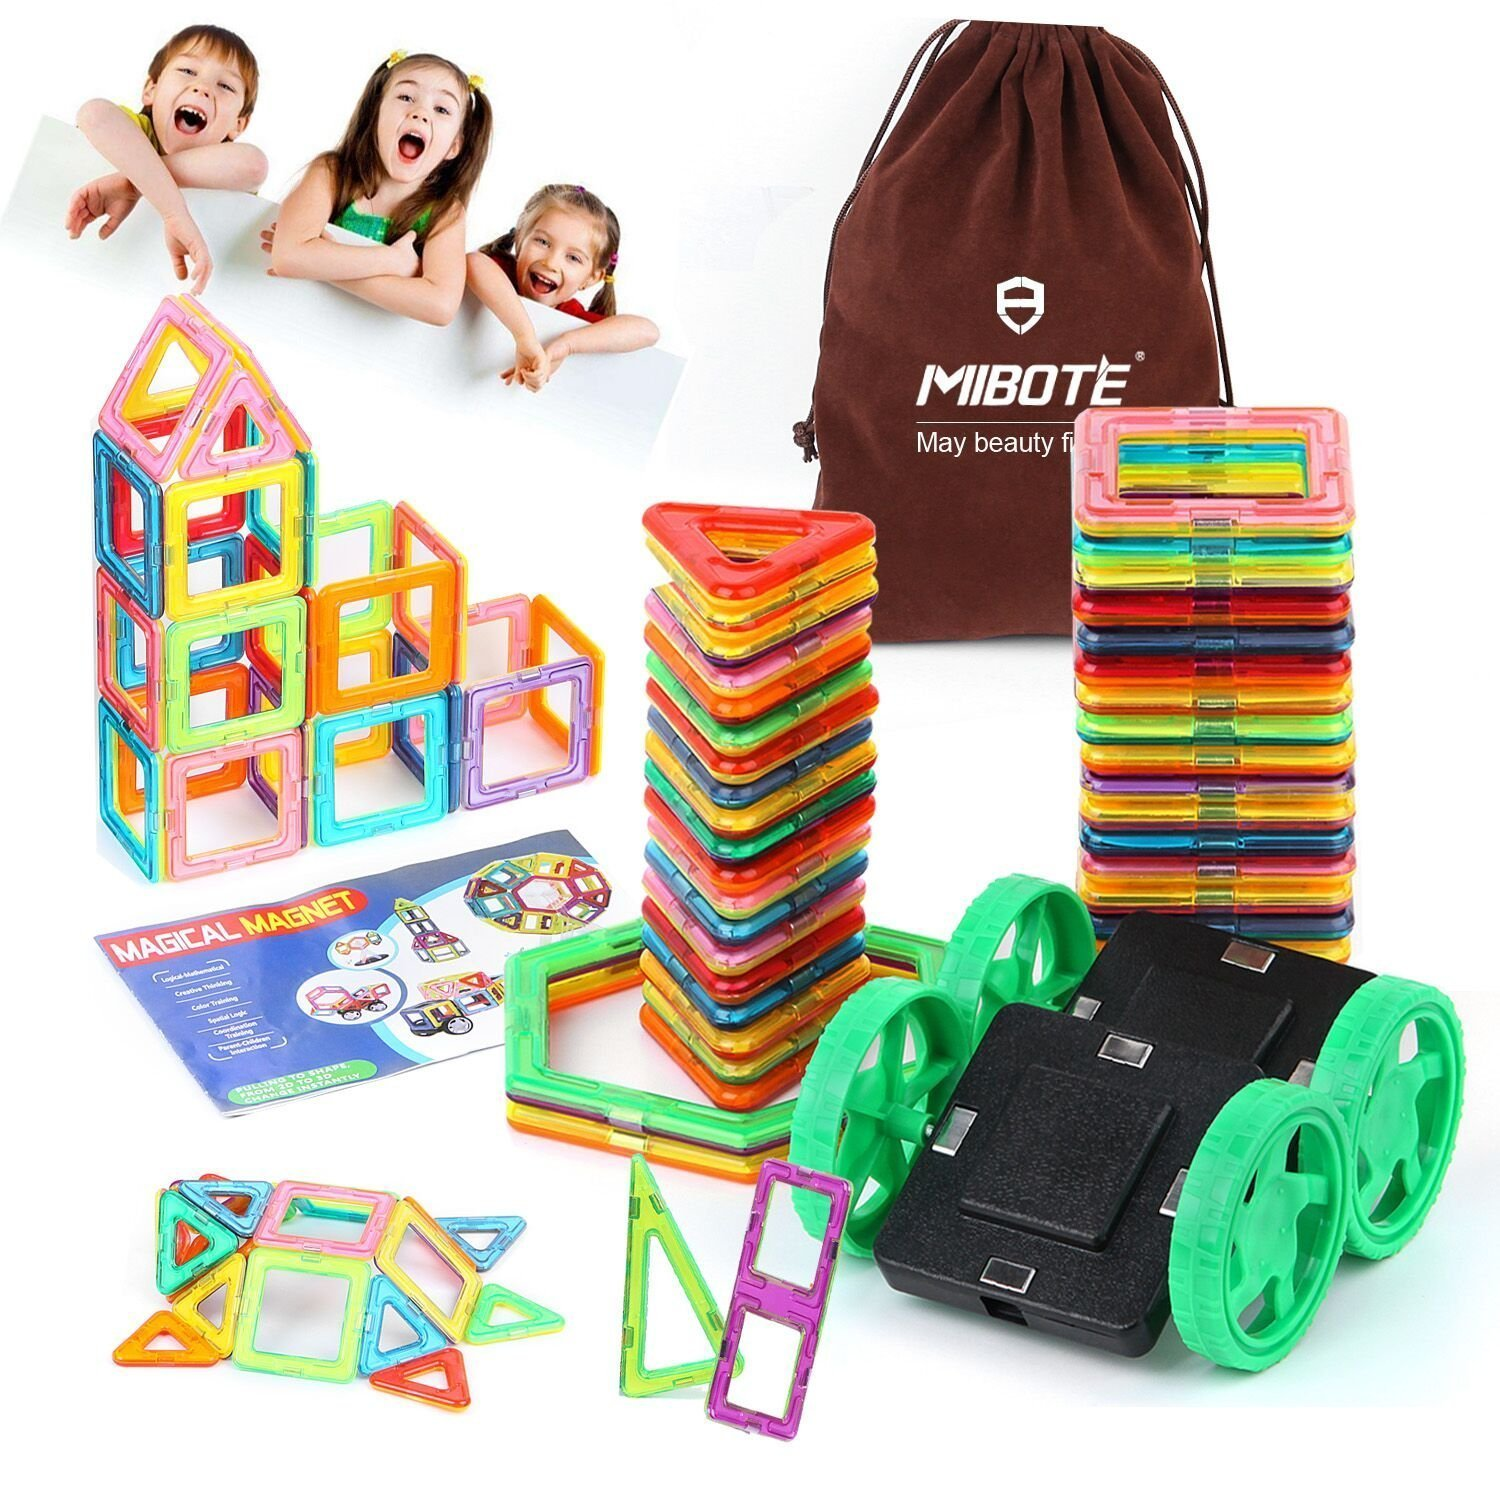 45 PCS Magnetic Building Blocks Educational Stacking Blocks